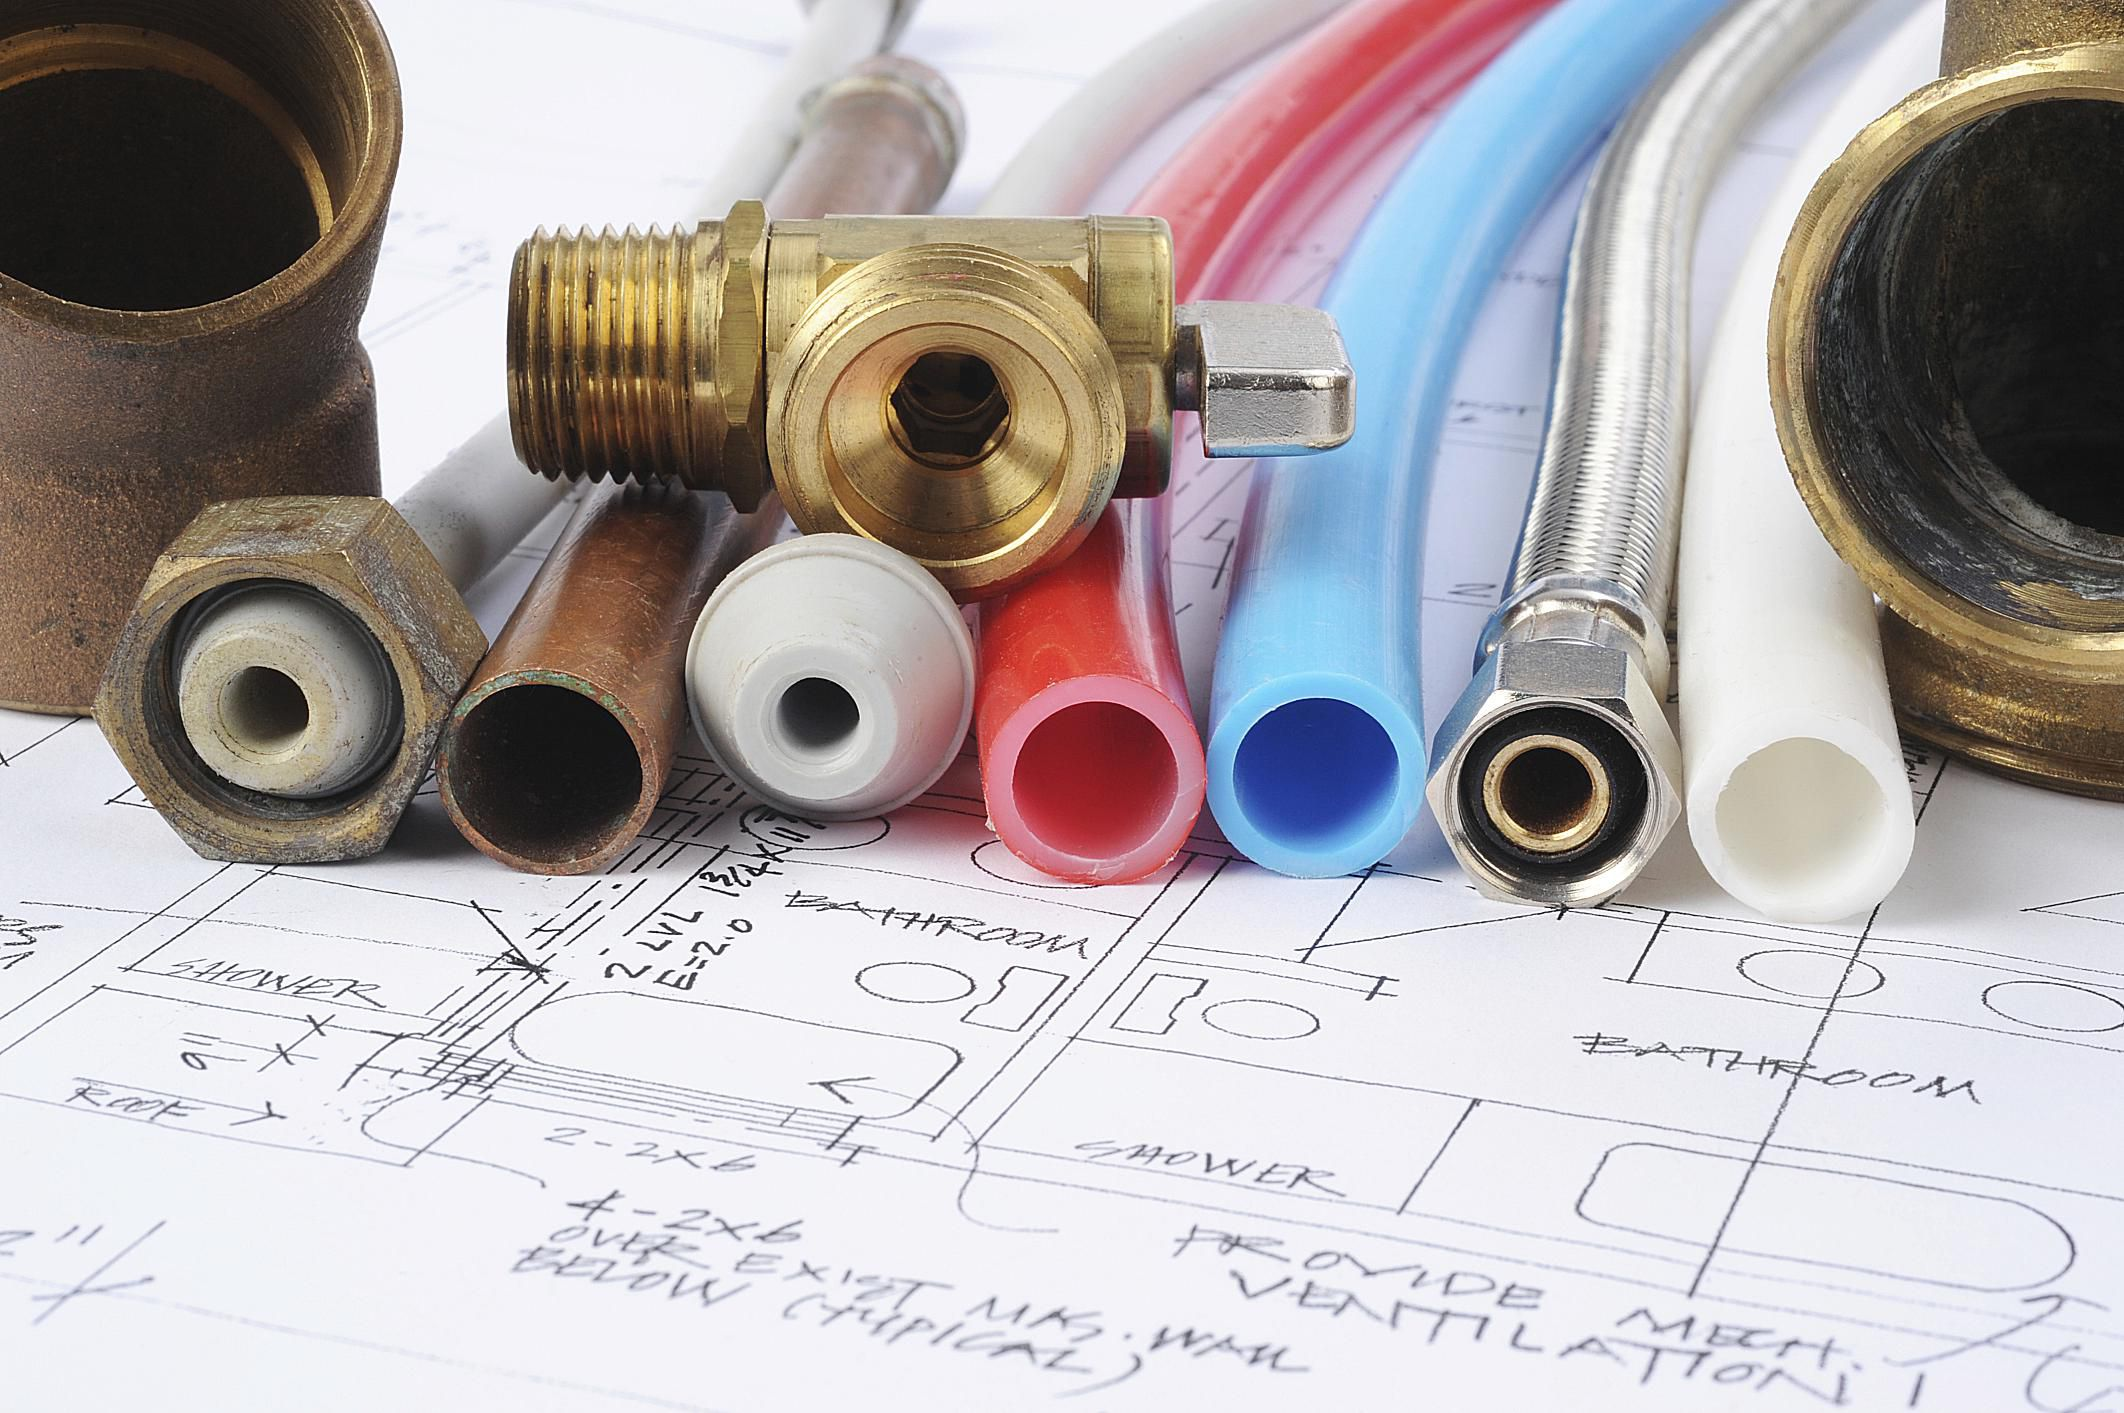 Basic Types Of Plumbing Pipes You Might Encounter Flexible Metal Conduit Sold For Electrical Wiring Photo Above Is